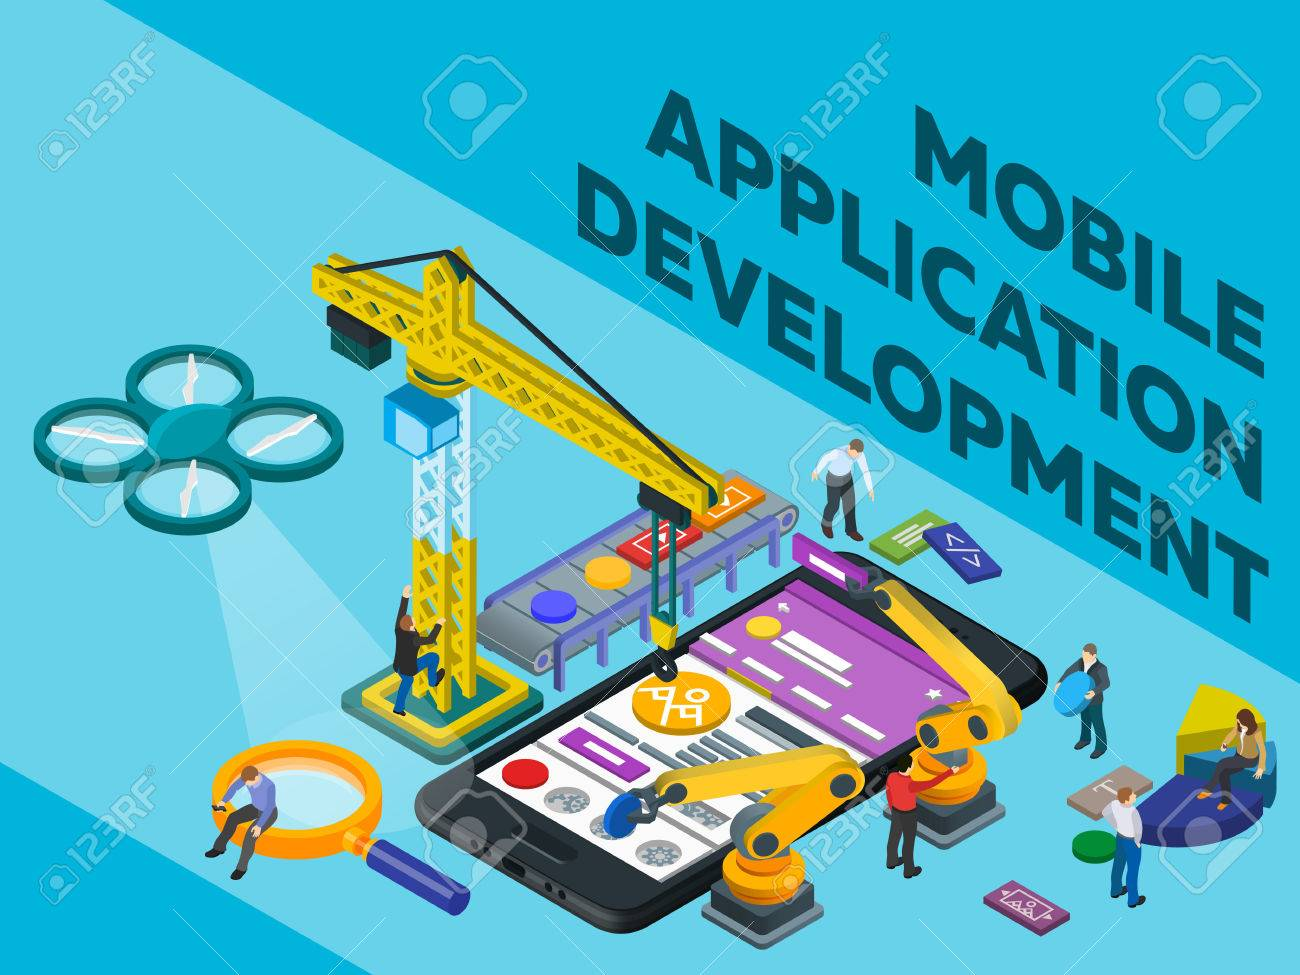 Mobile App Development  Flat 3d isometric mobile UI web design